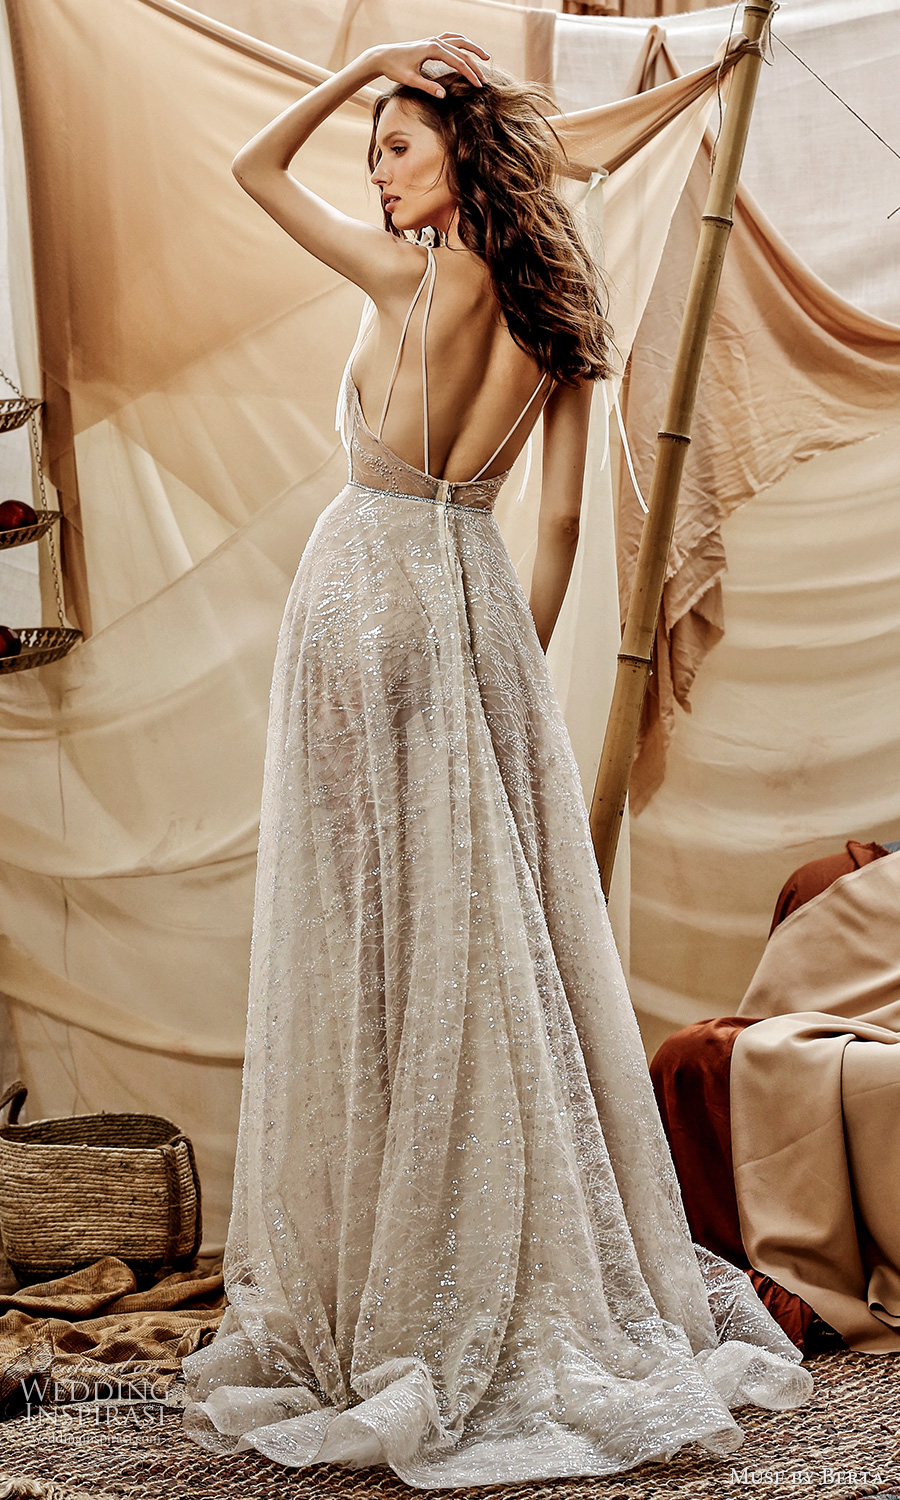 muse by berta spring 2021 bridal sleeveless thin straps v neckline embellished a line ball gown wedding dress chapel train (13) bv